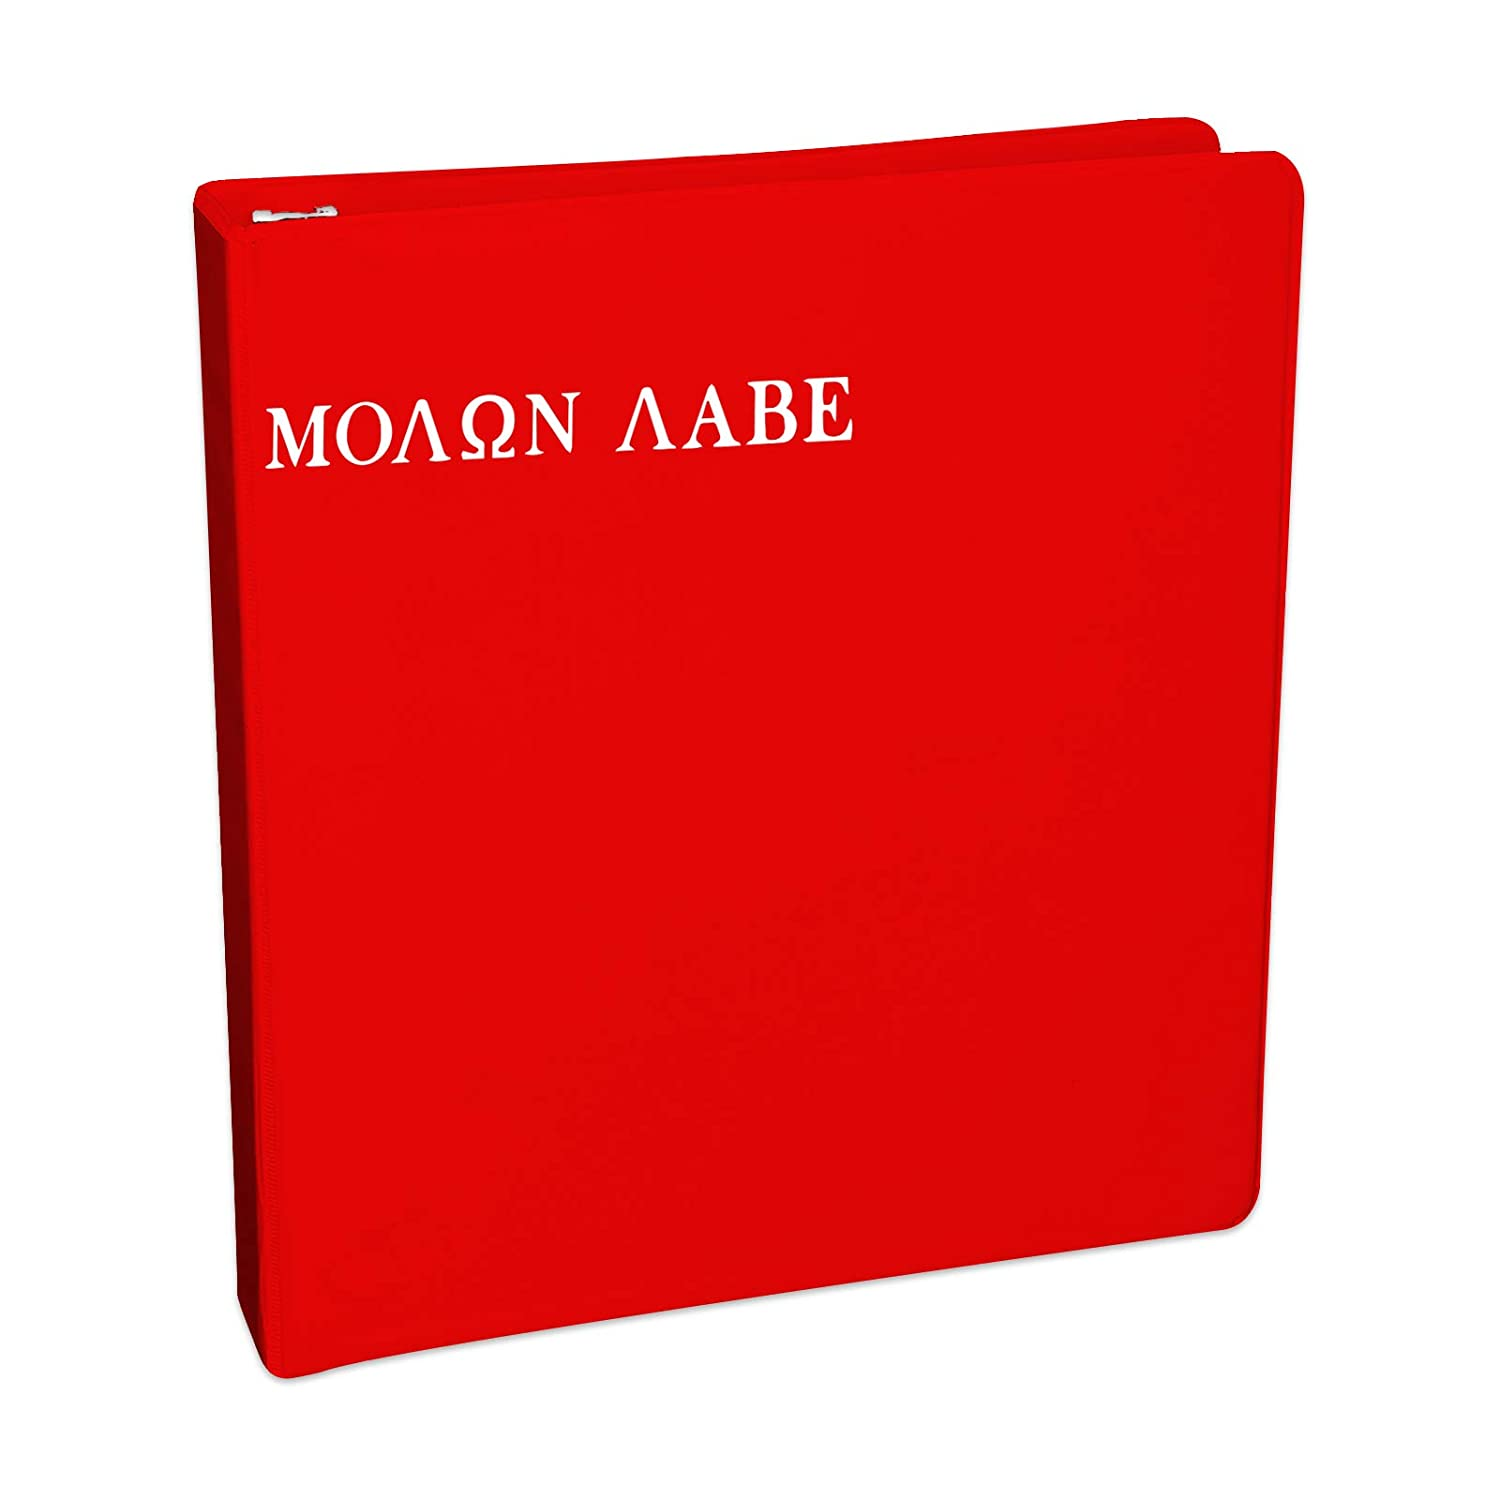 Bargain Max Decals White Sticker Decal Notebook Car Laptop 8 Molon Labe BM-MPR-57 Come TAKE Them!